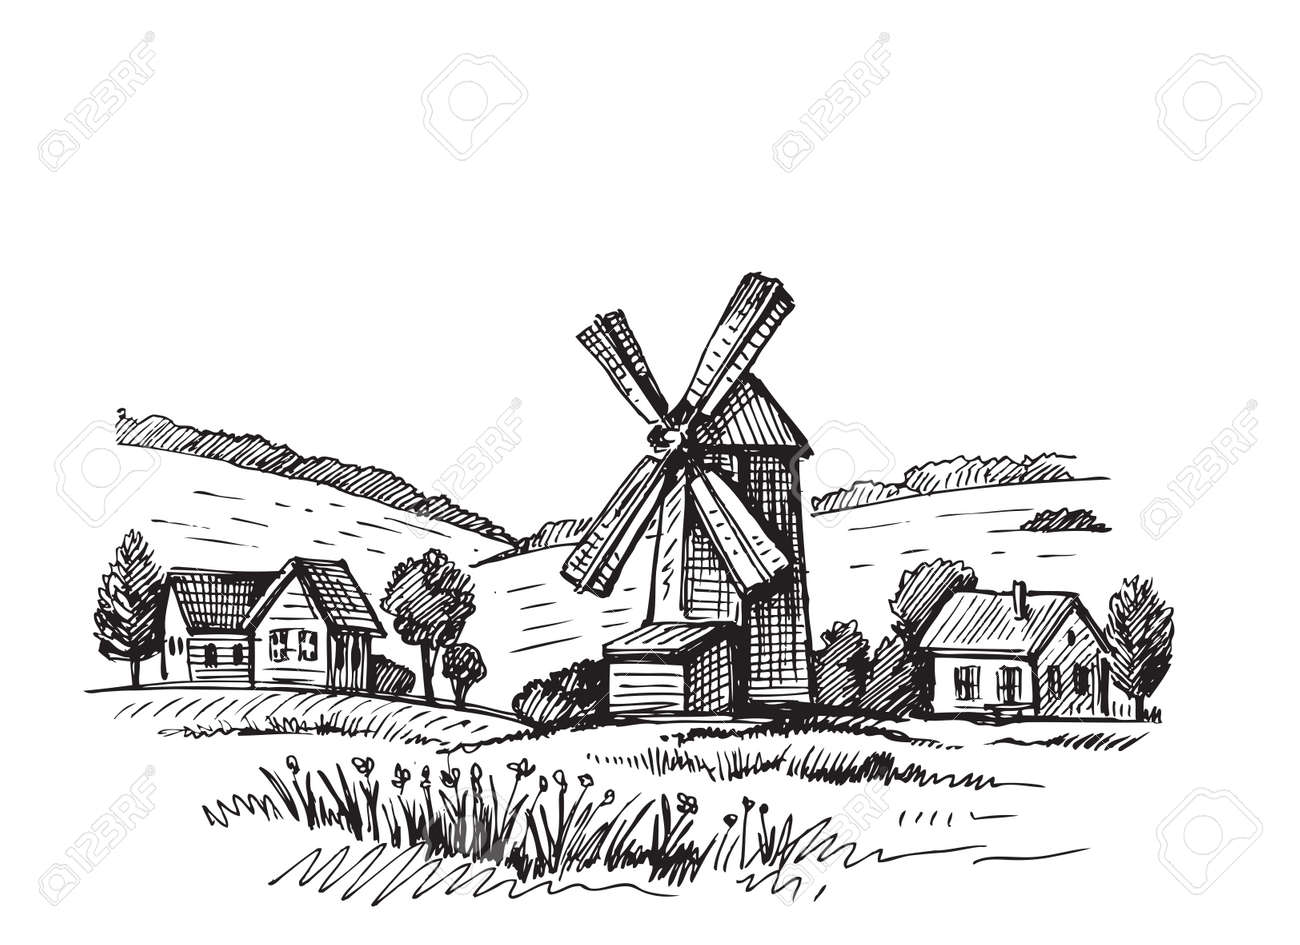 Hand drawn doodle illustration of a mill - 69249882